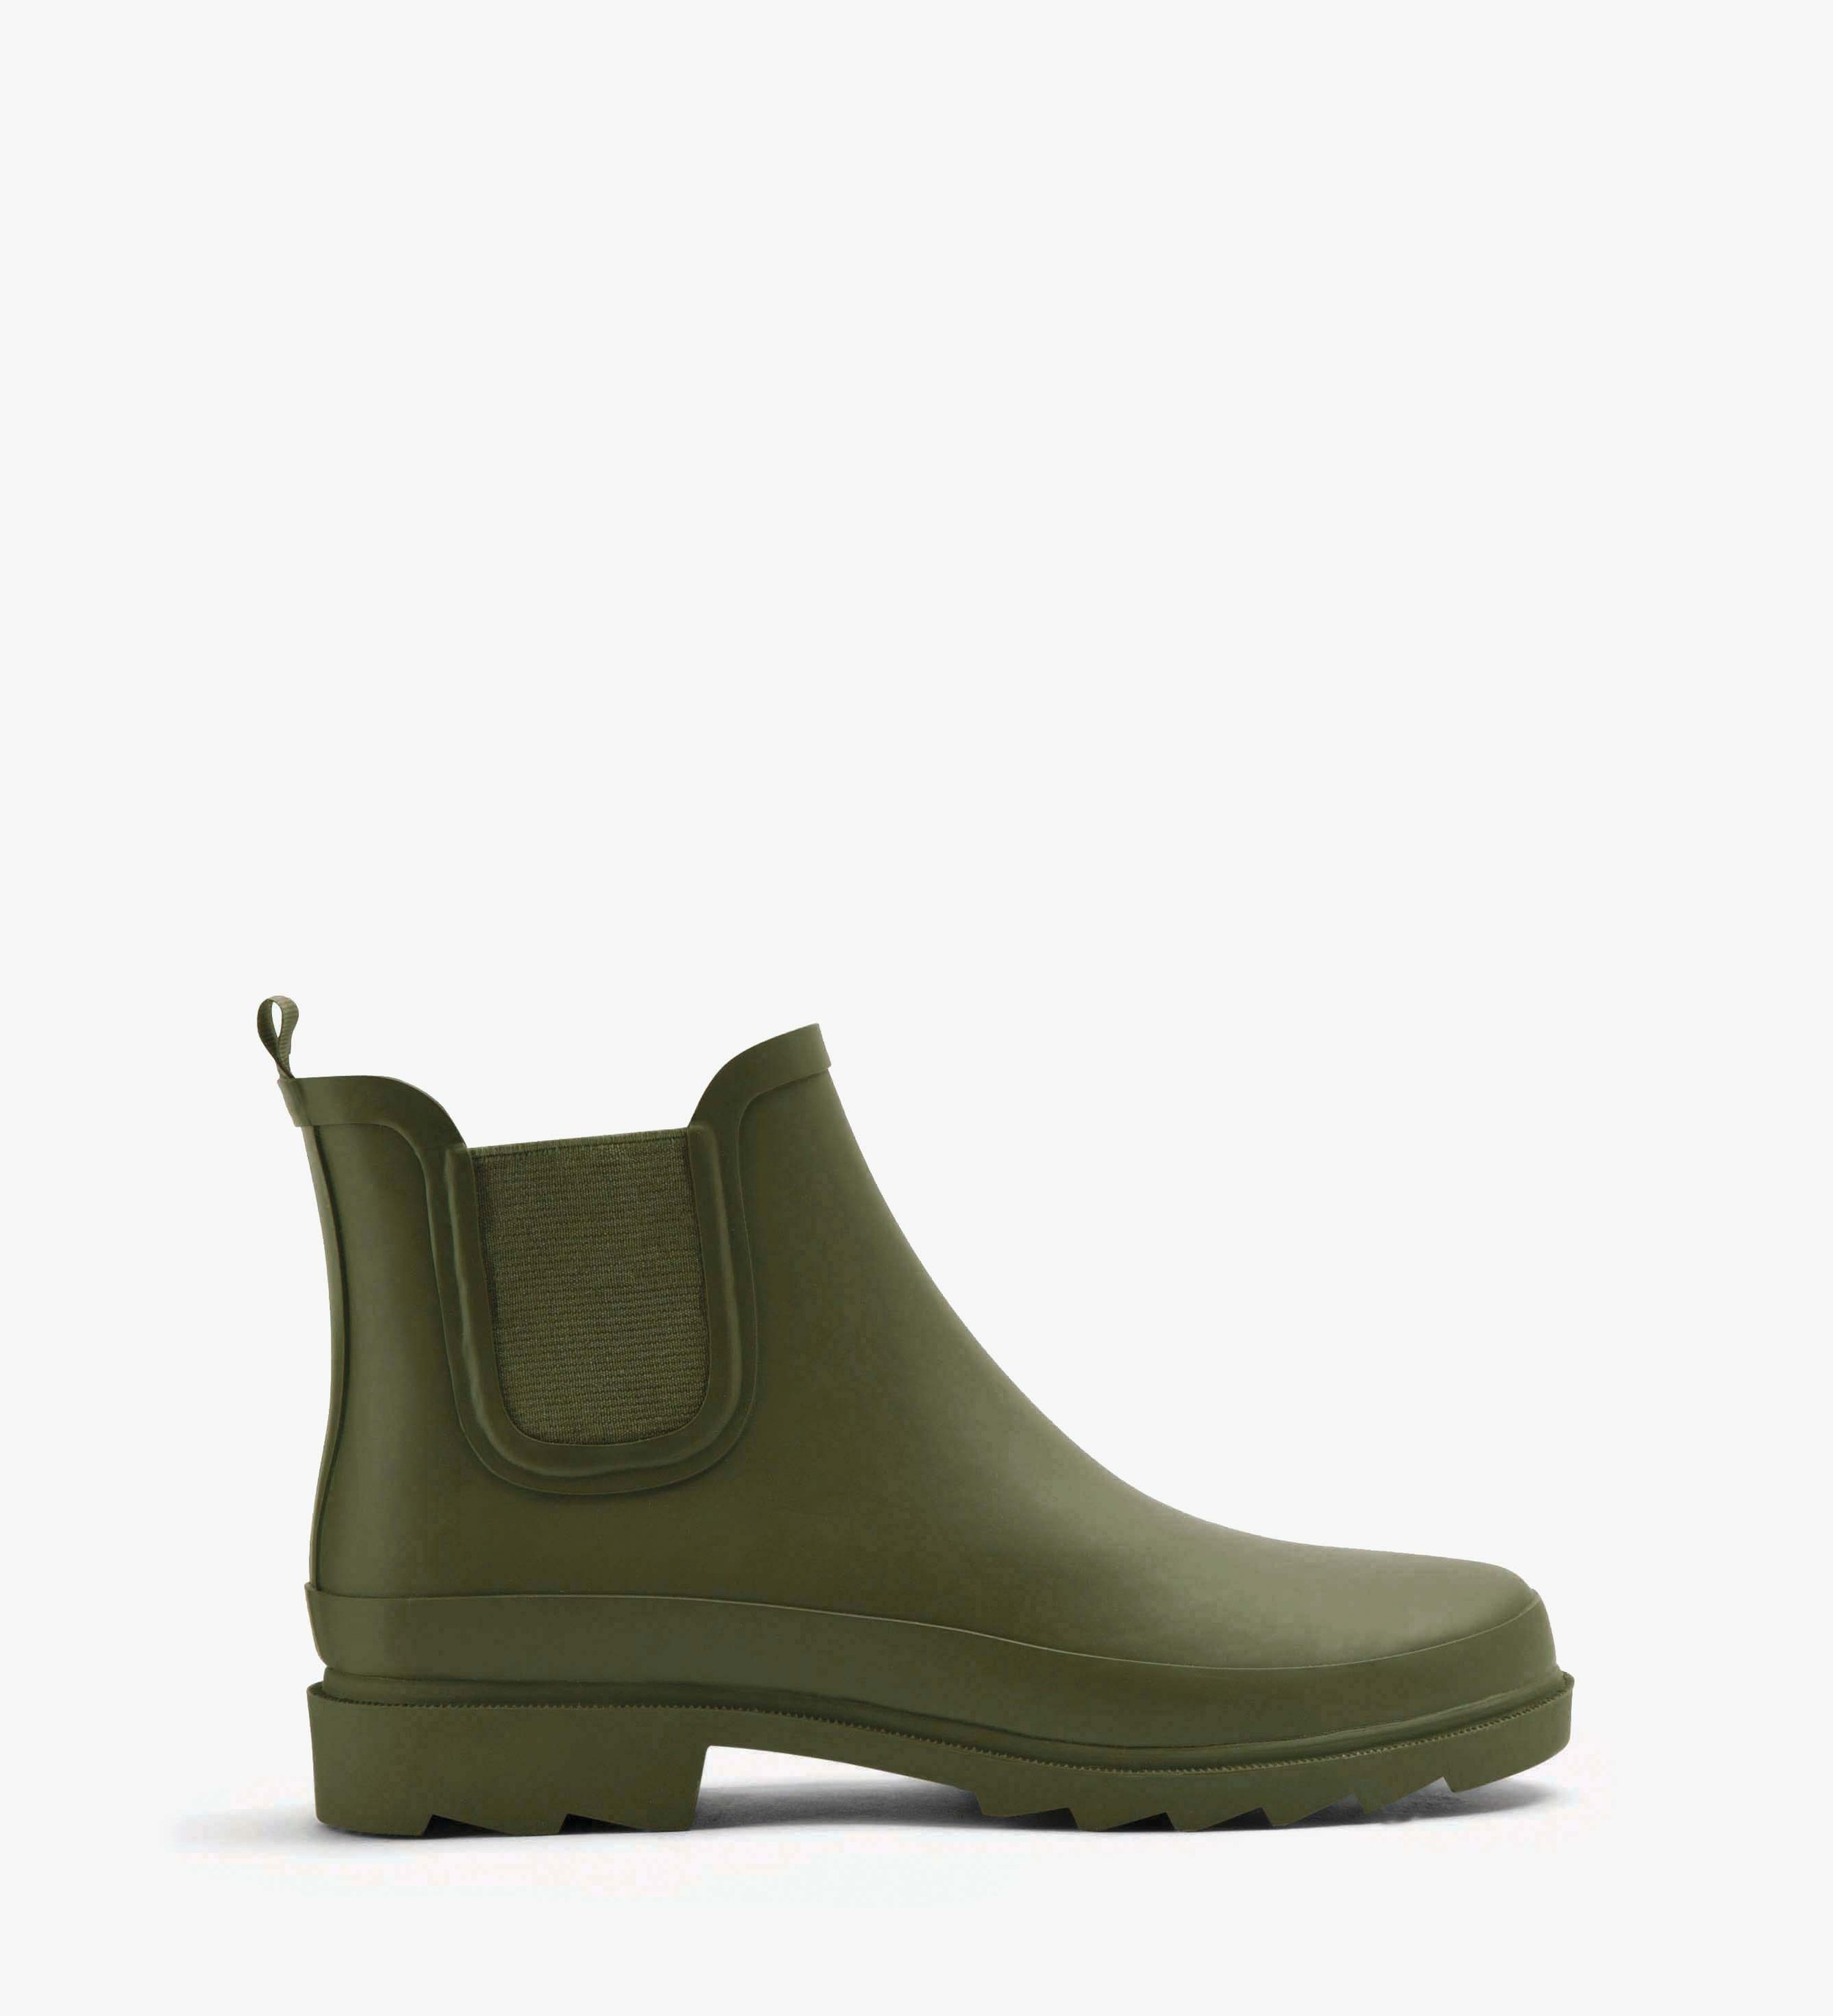 Lane Rubber Boot in Olive - USD $110